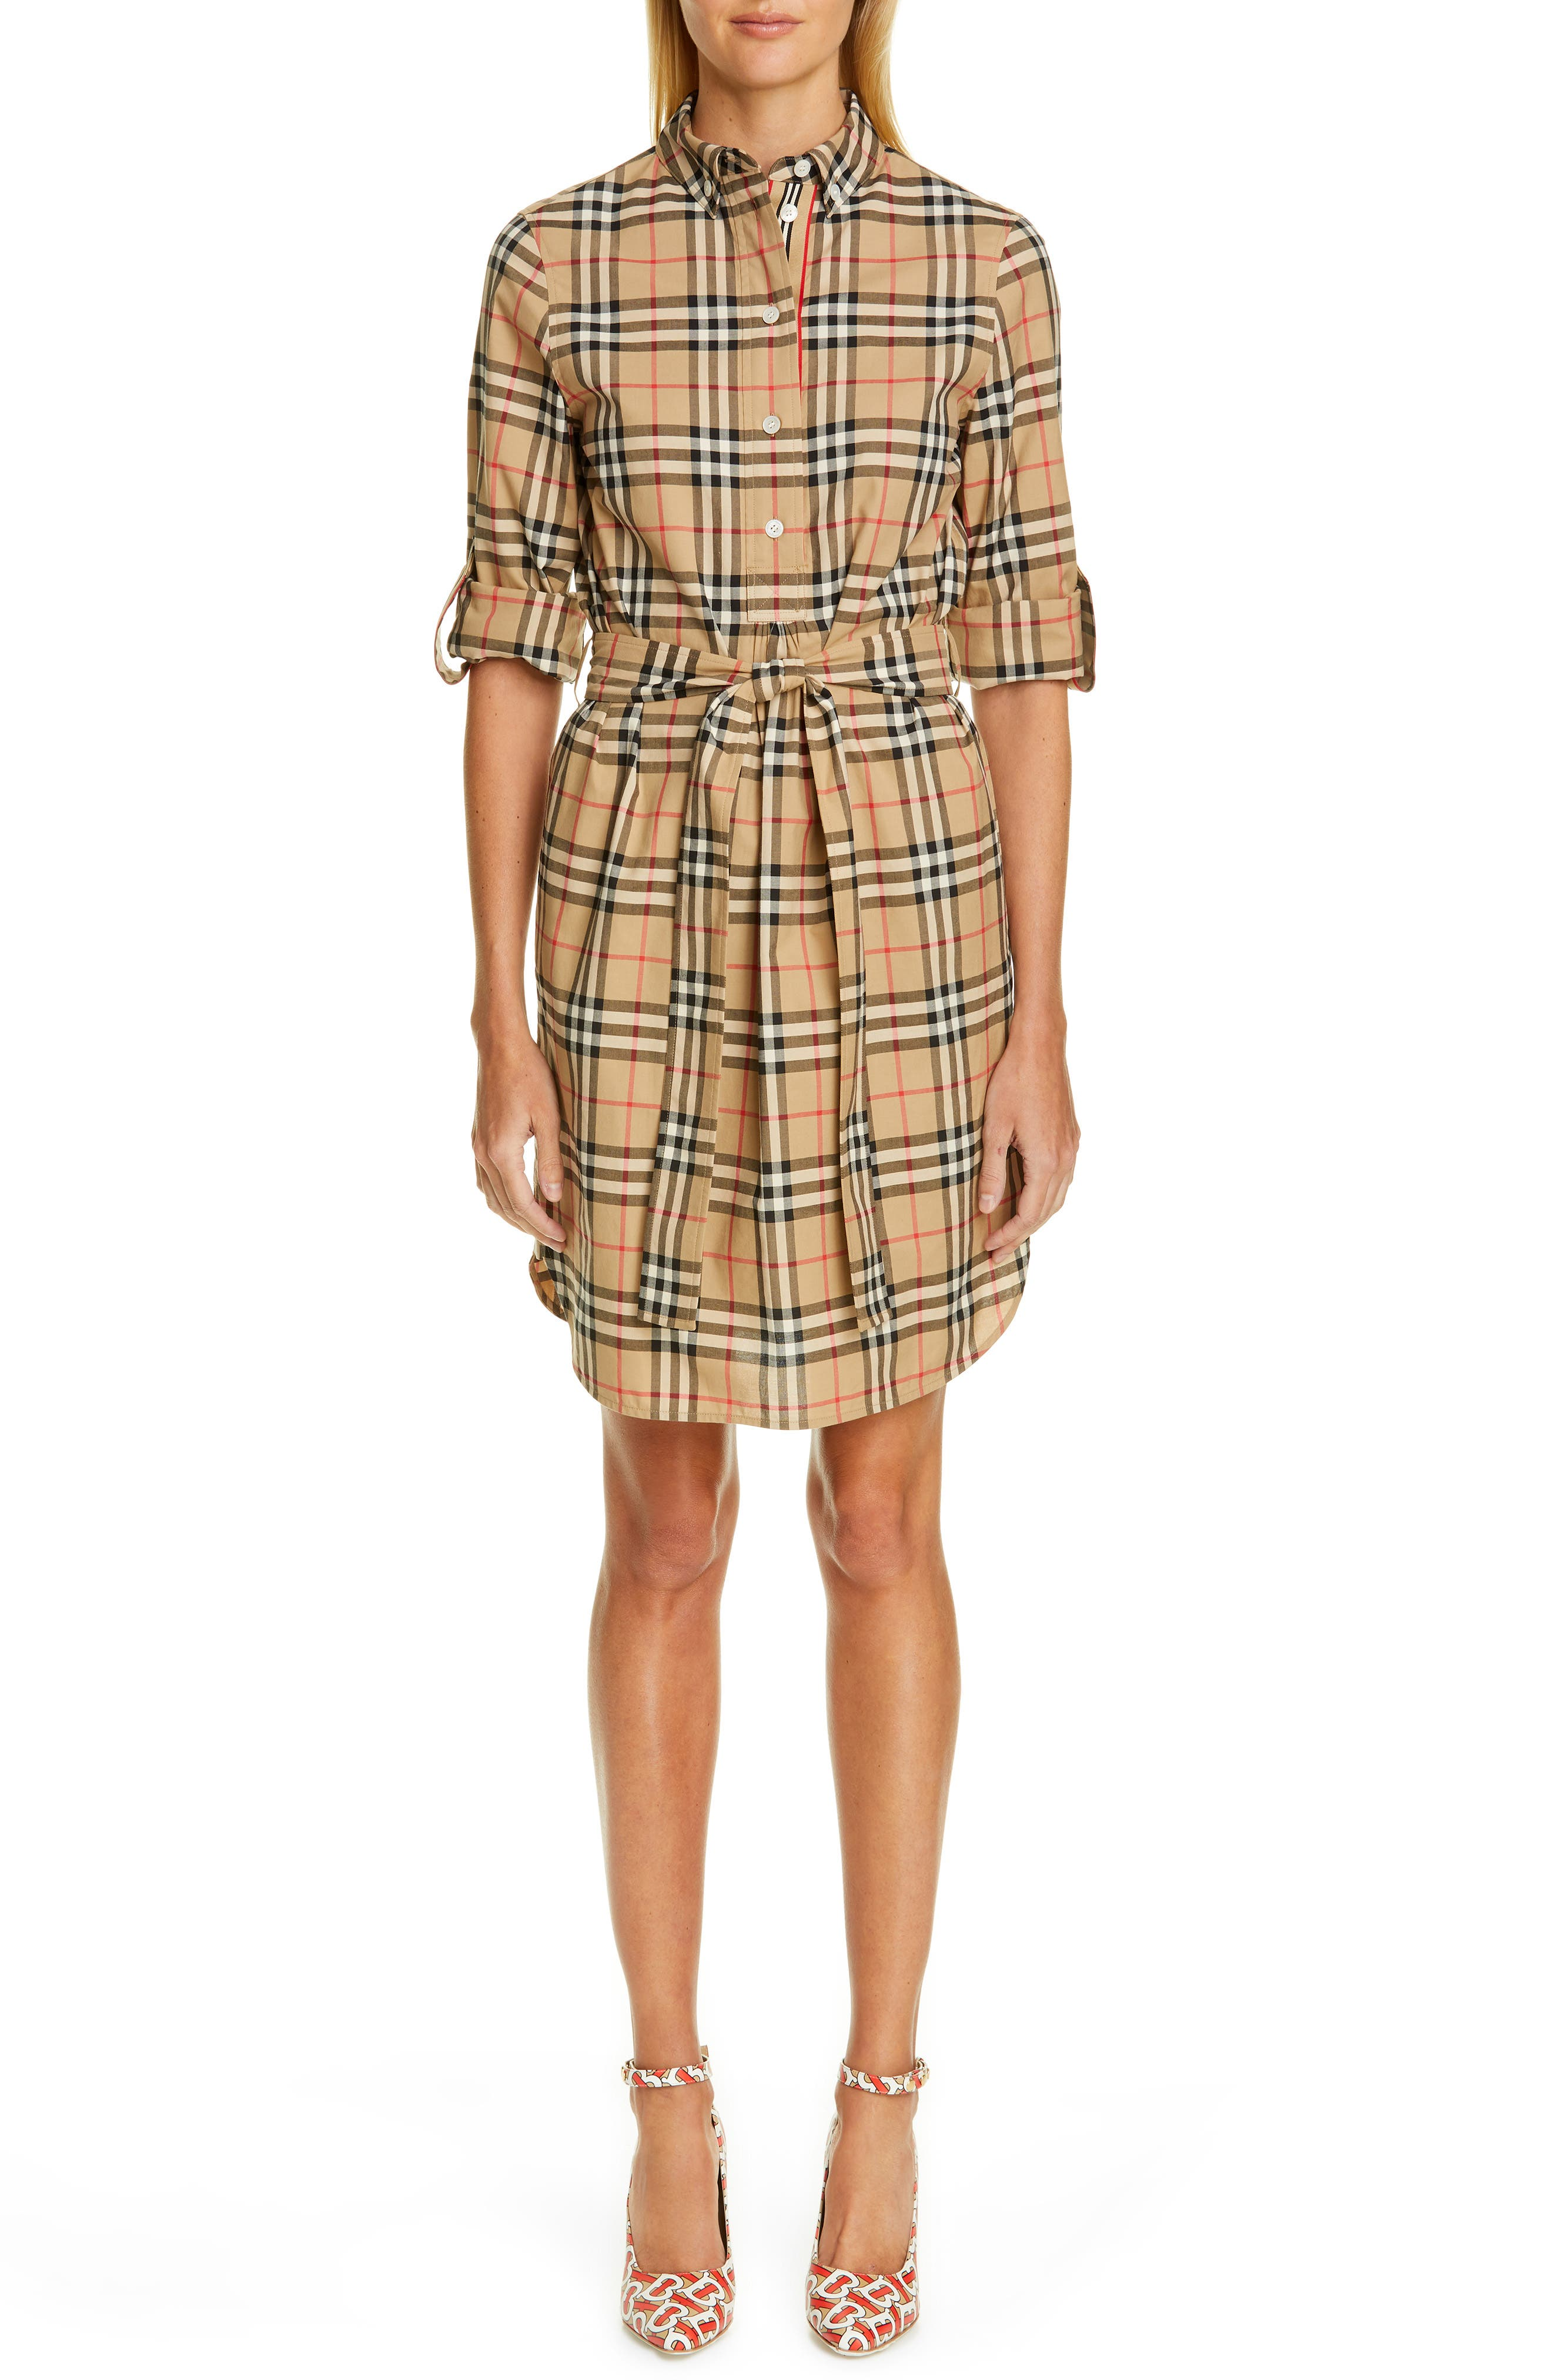 BURBERRY Giovanna Archive Check Shirtdress, Main, color, ARCHIVE BEIGE IP CHK